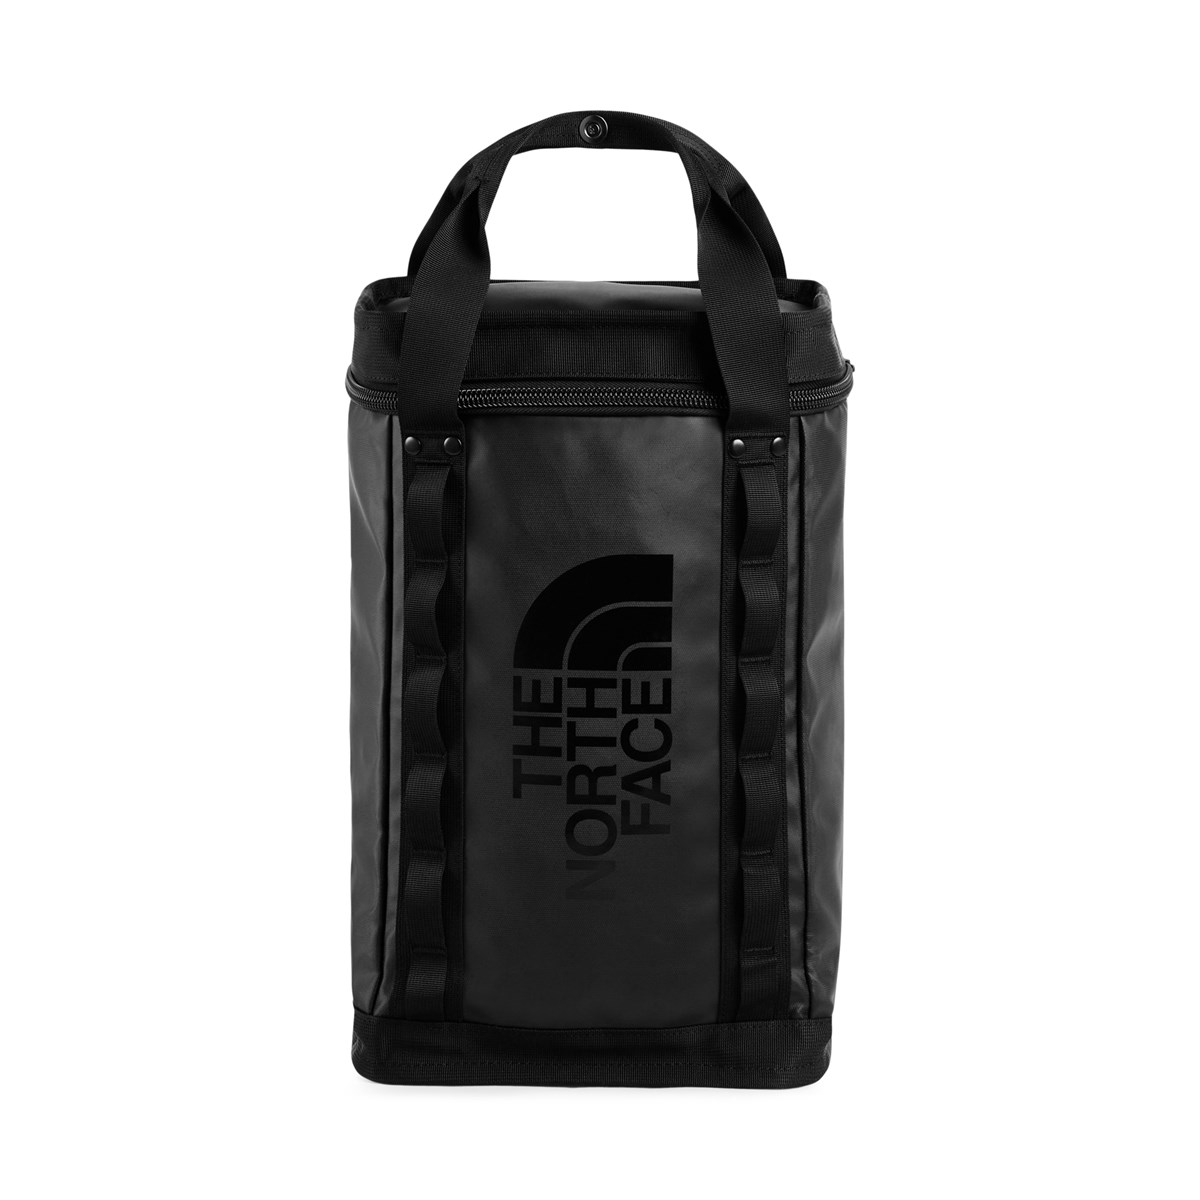 Explore Fusebox Backpack in All Black